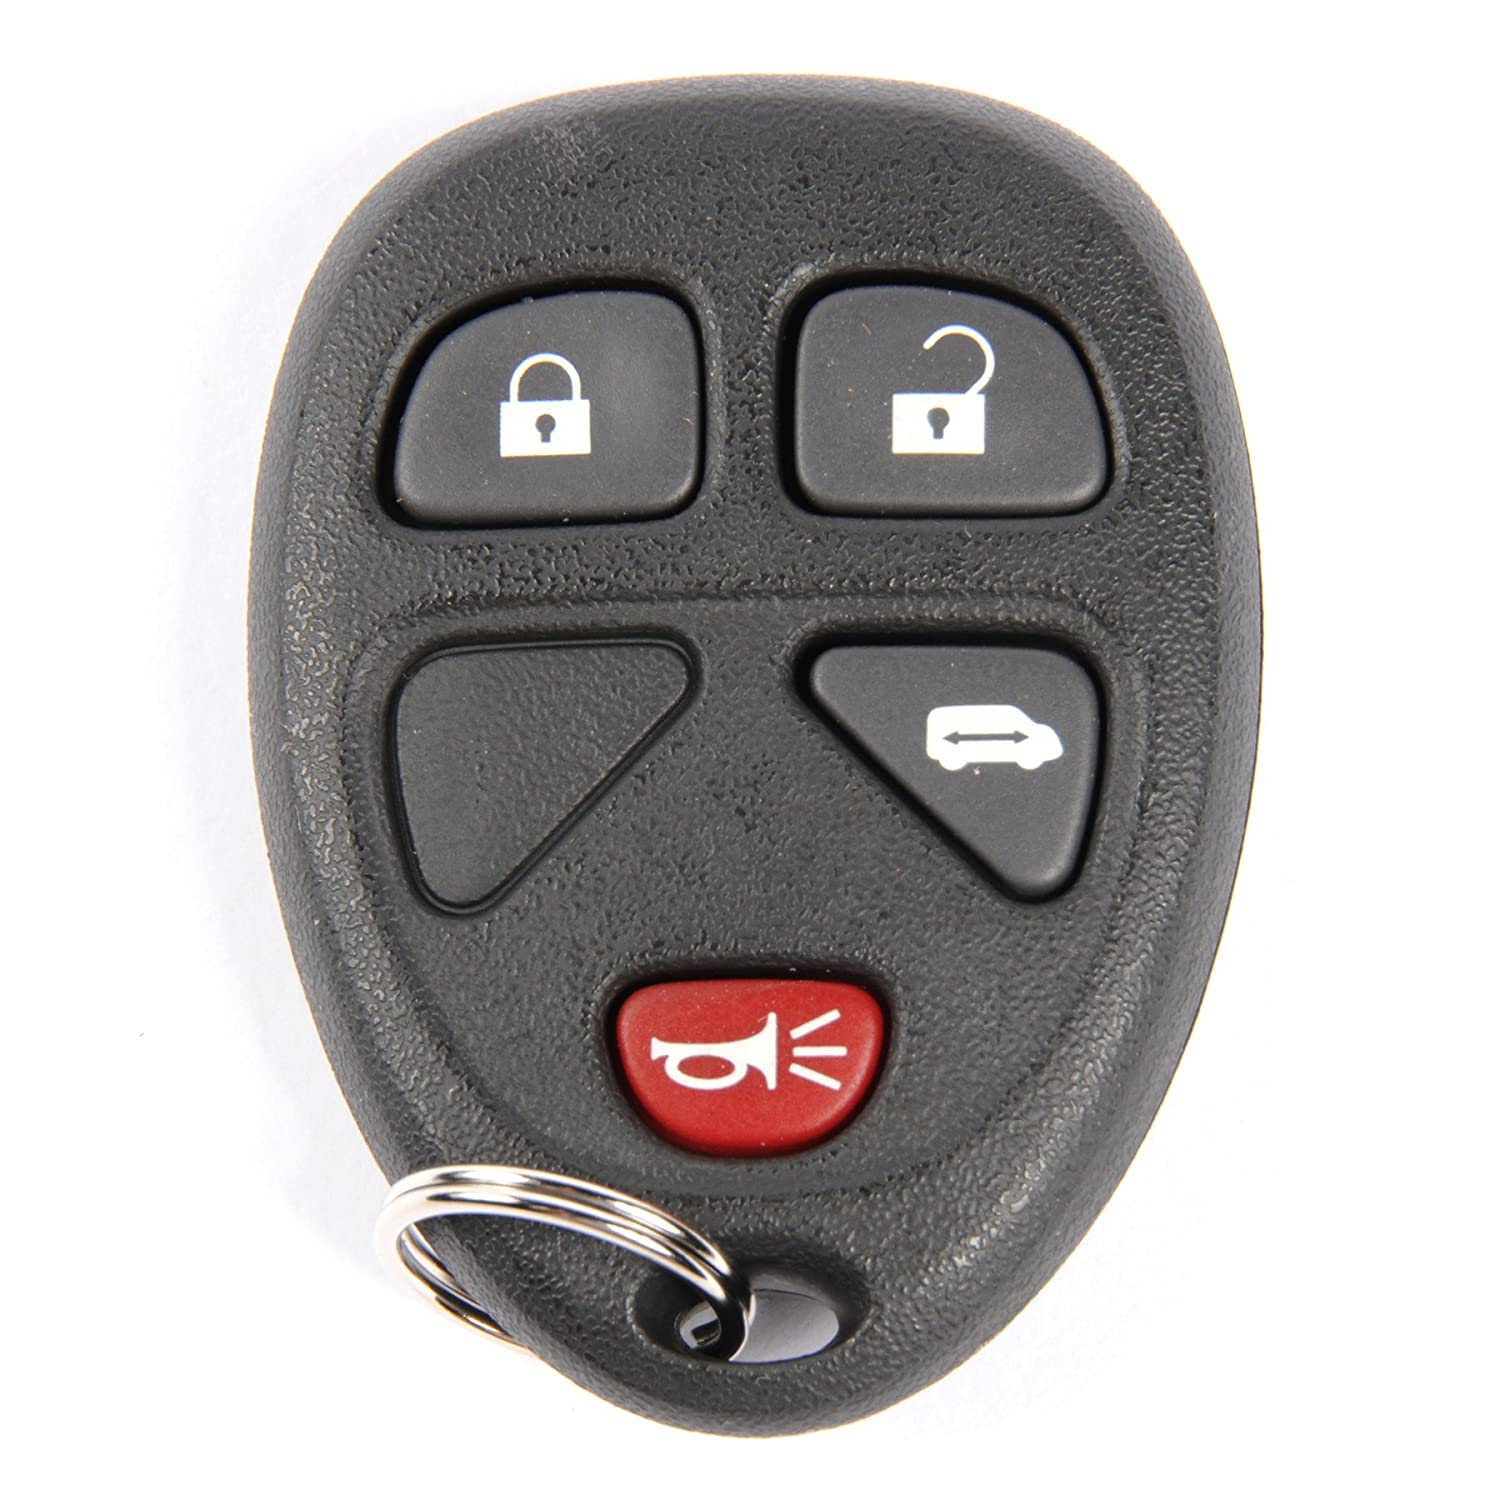 ACDelco 15100812 GM Original Equipment 4 Button Keyless Entry Remote Key Fob